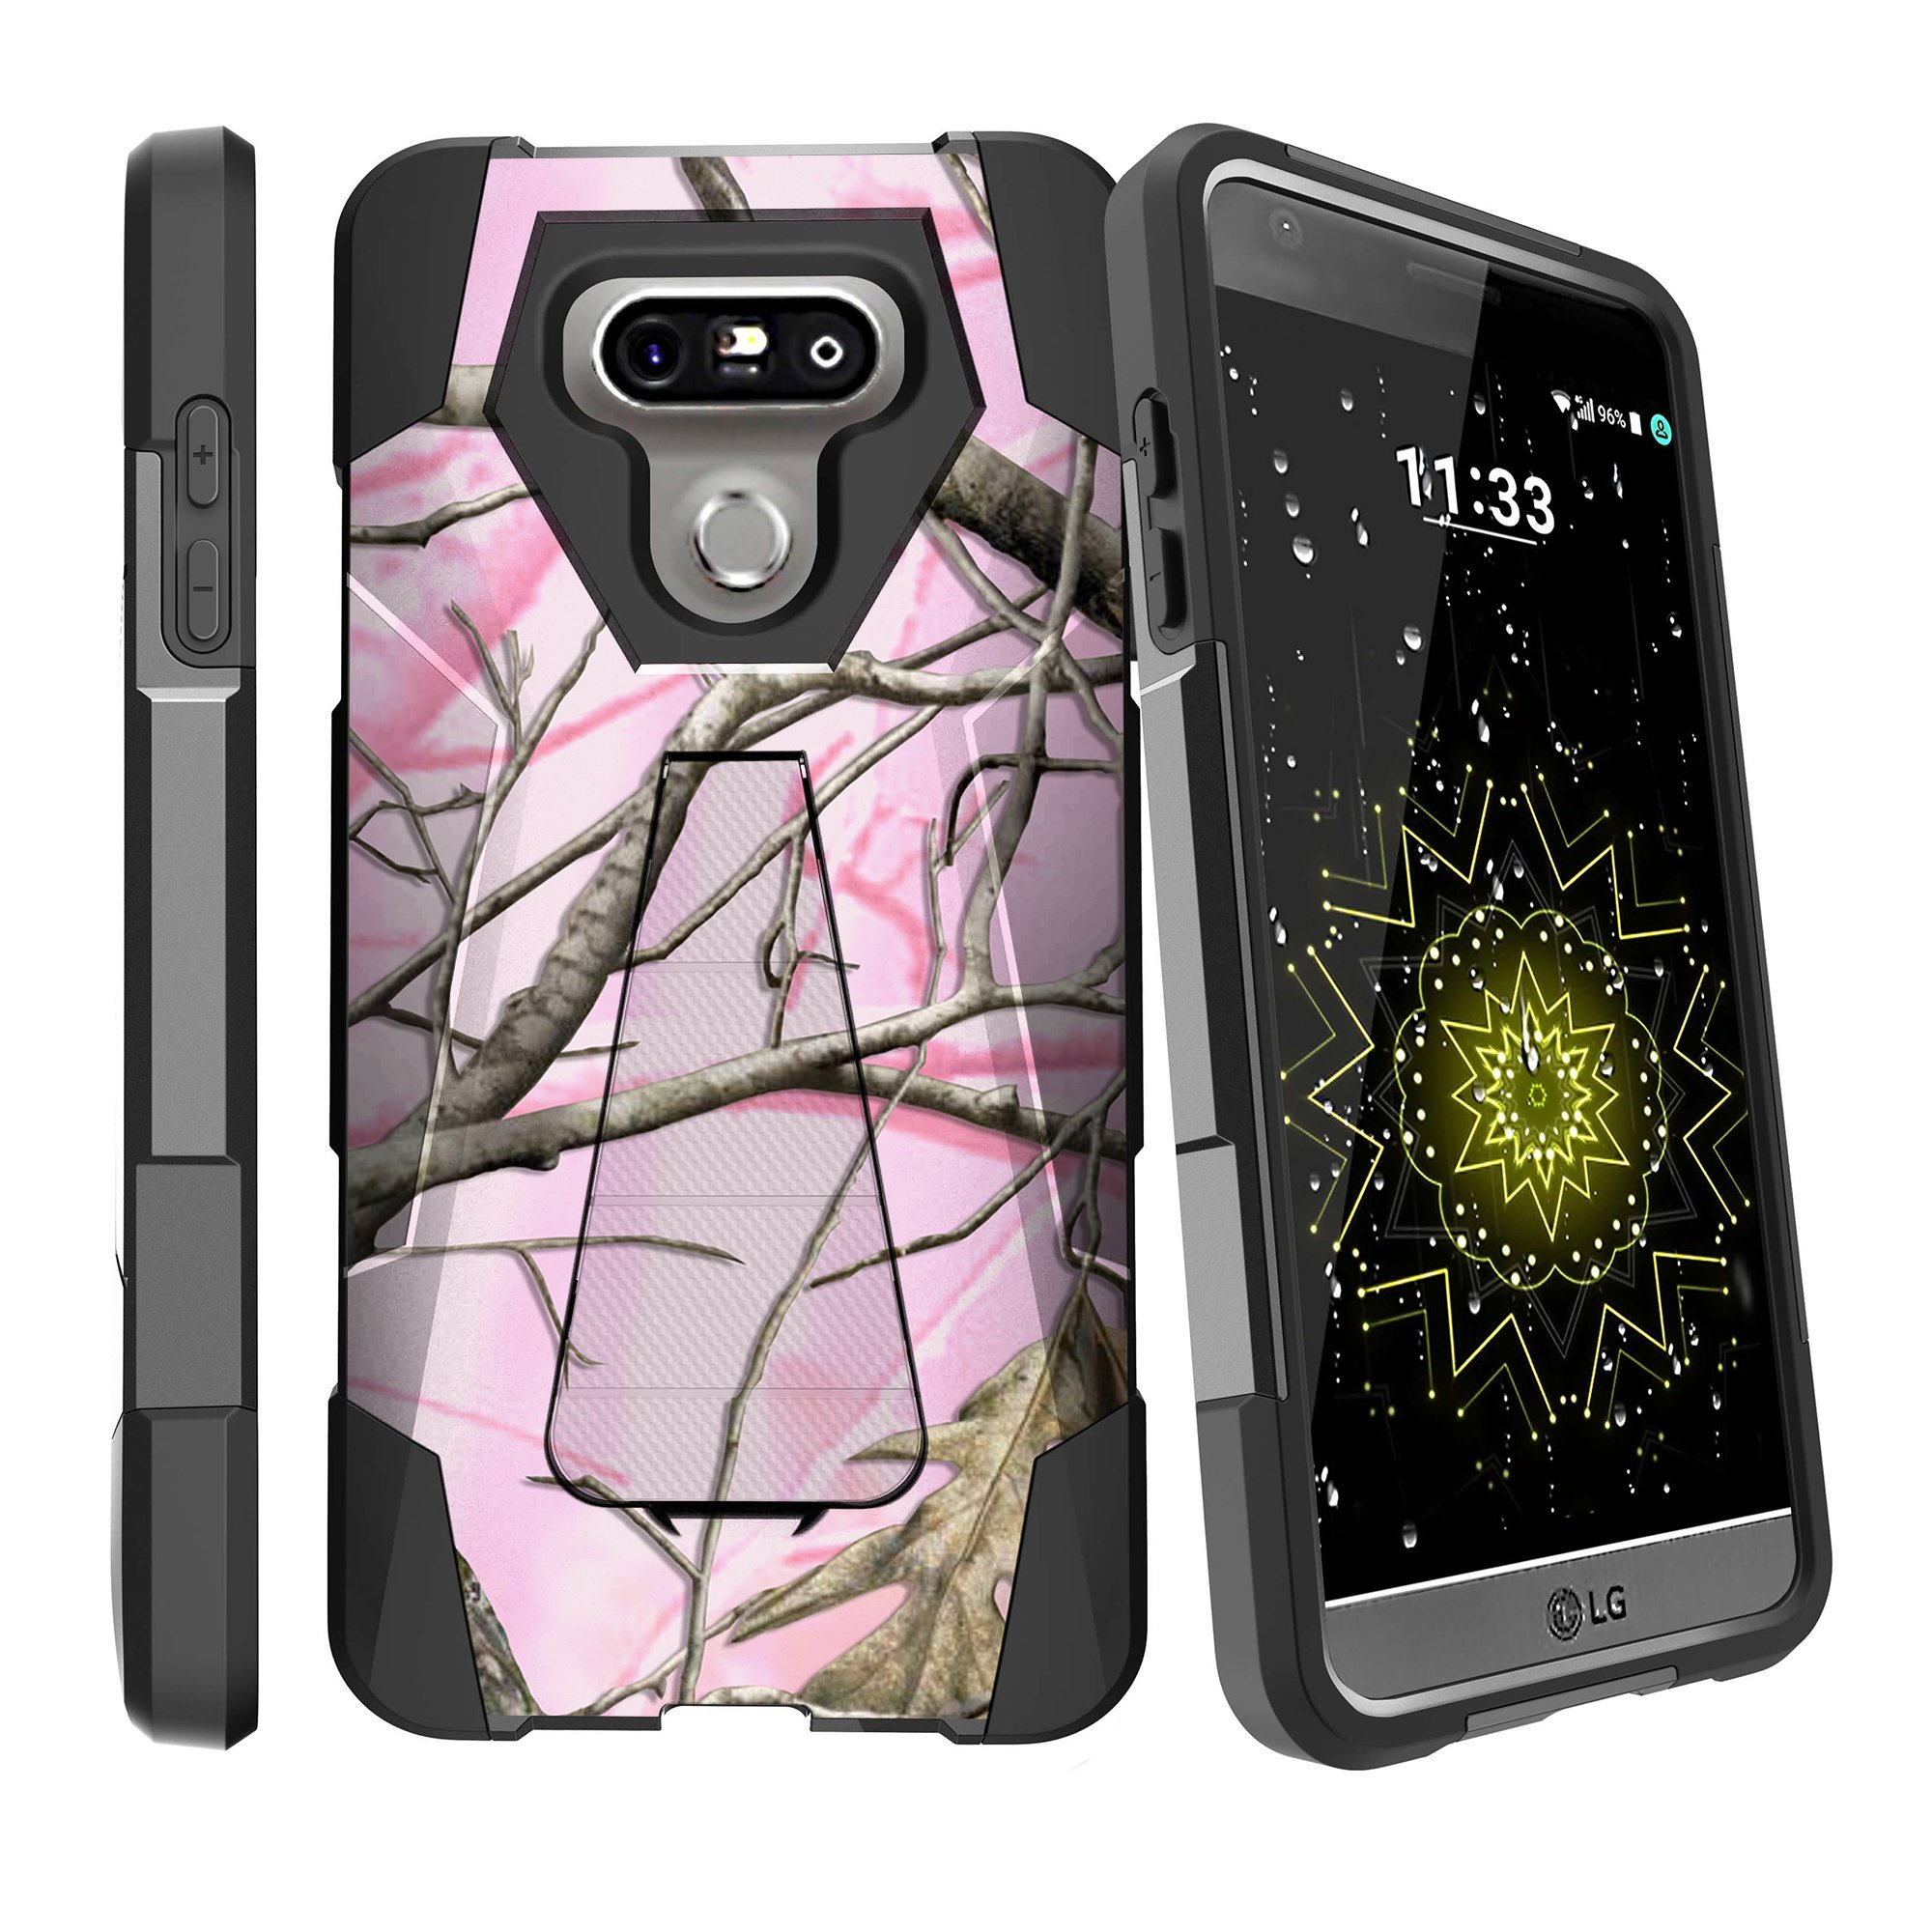 MINITURTLE Case Compatible w/ LG G6 Case| LG G6 Football Case [SHOCK FUSION] High Impact Hybrid Dual Layer Case w/ Stand Pink Hunters Camouflage